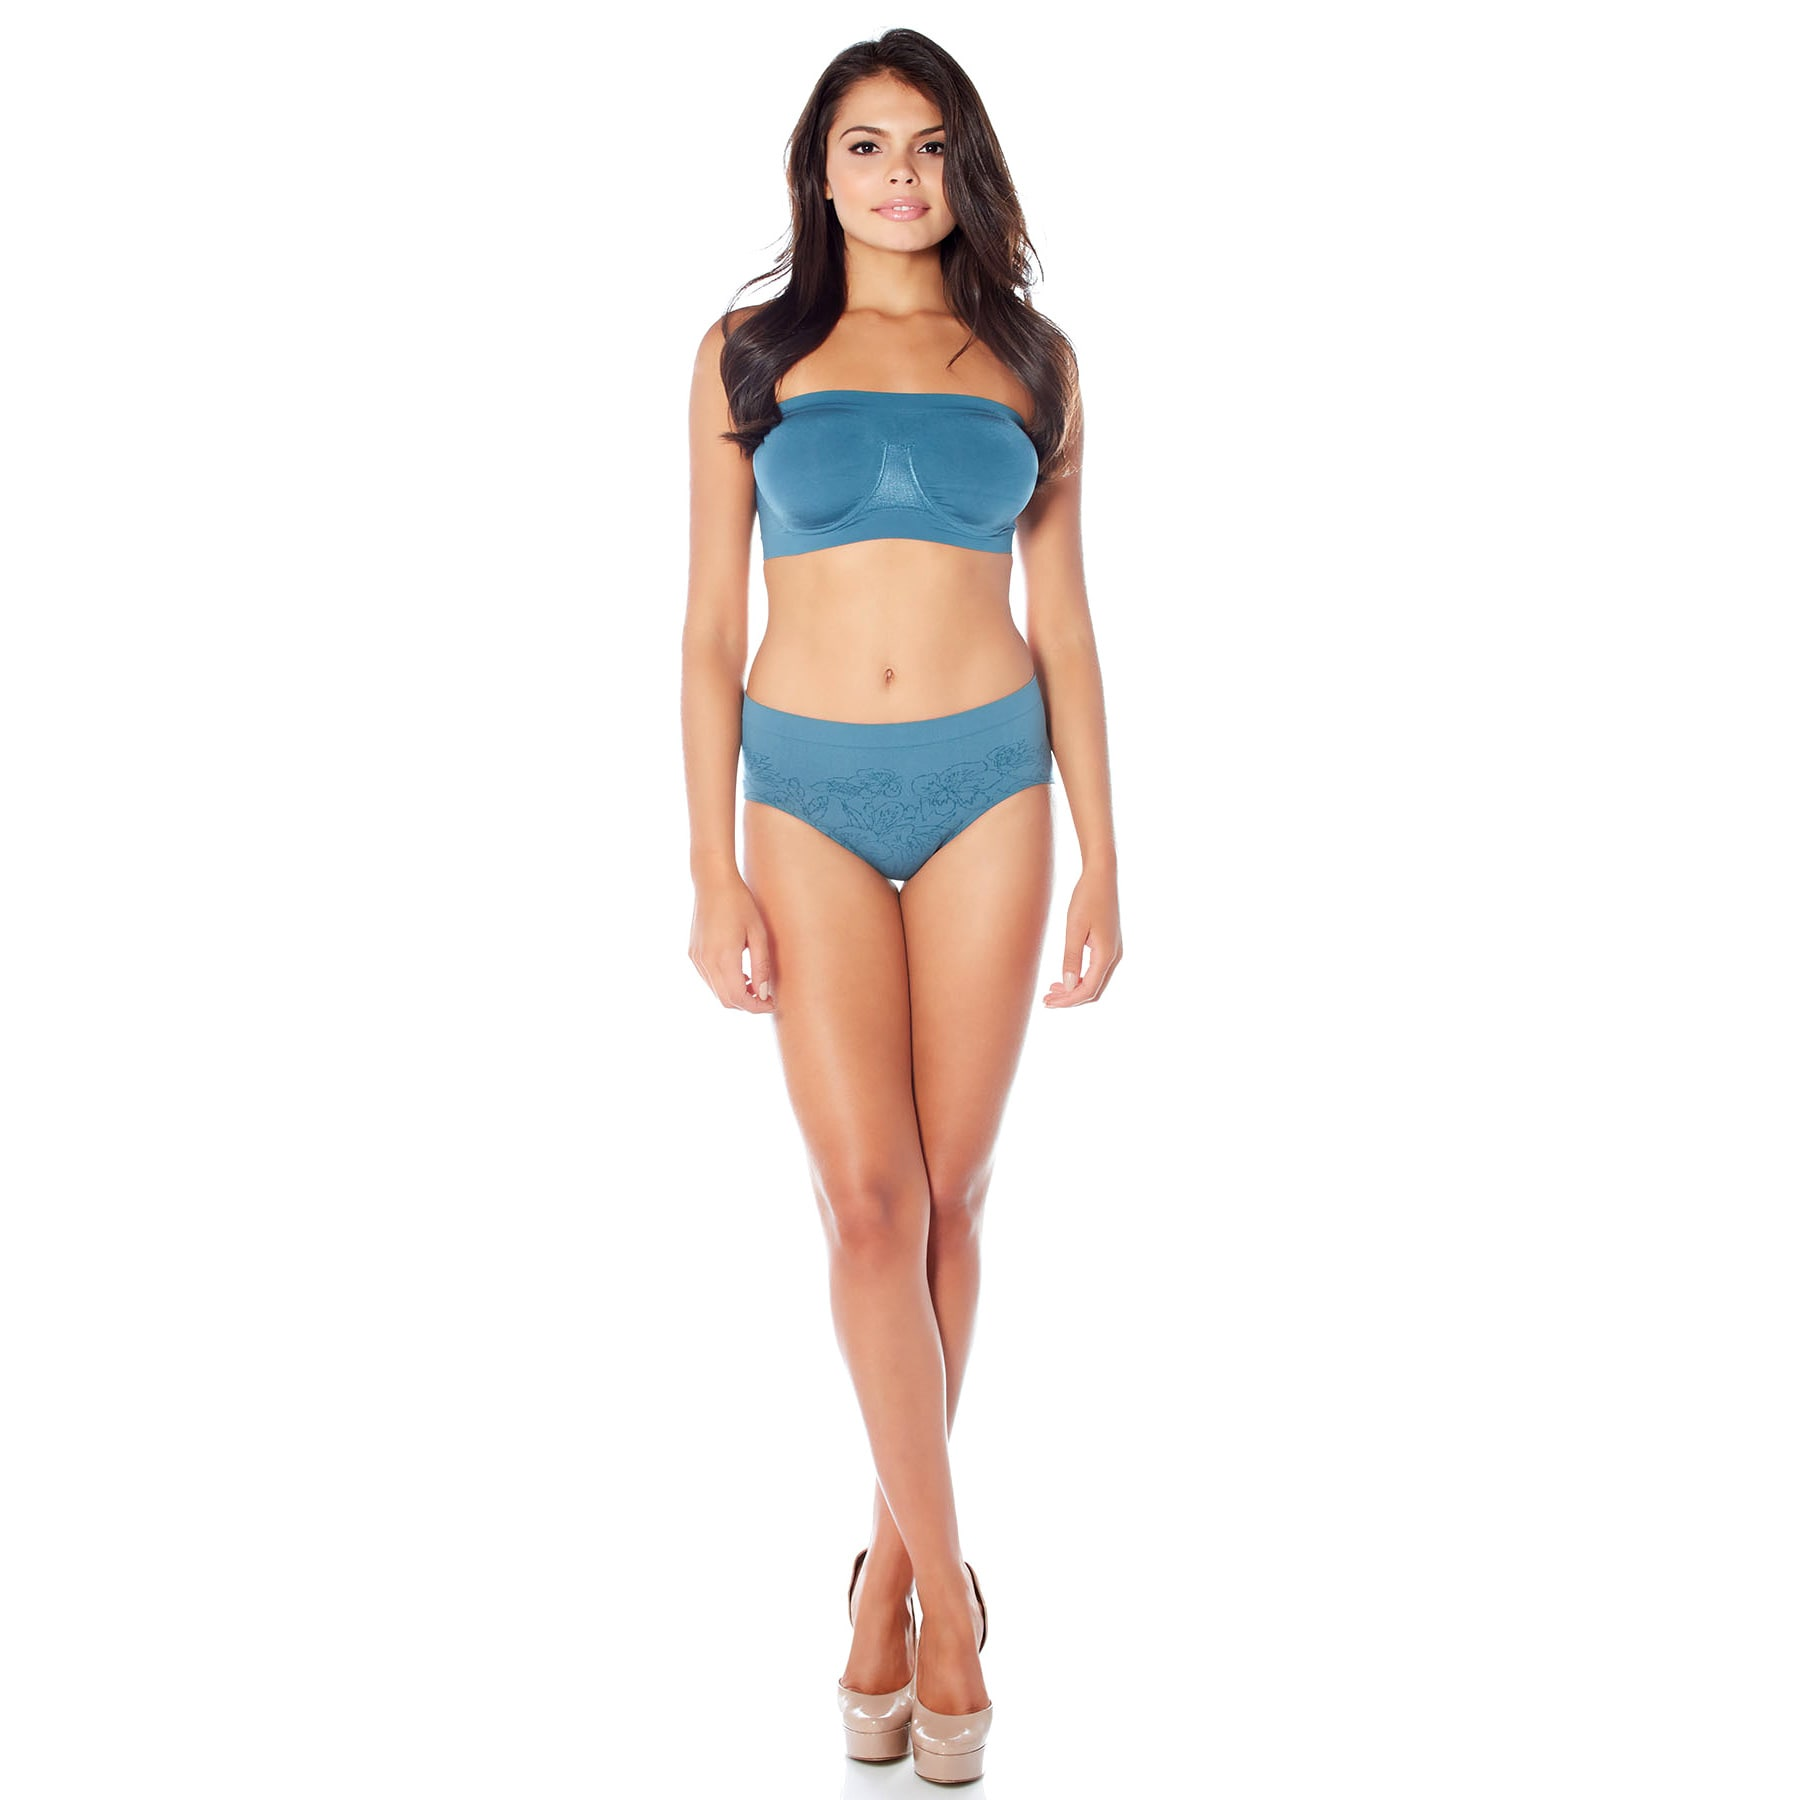 a868acdeb2d Rhonda Shear Angel Polyester and Spandex Seamless Underwire Bandeau Bra